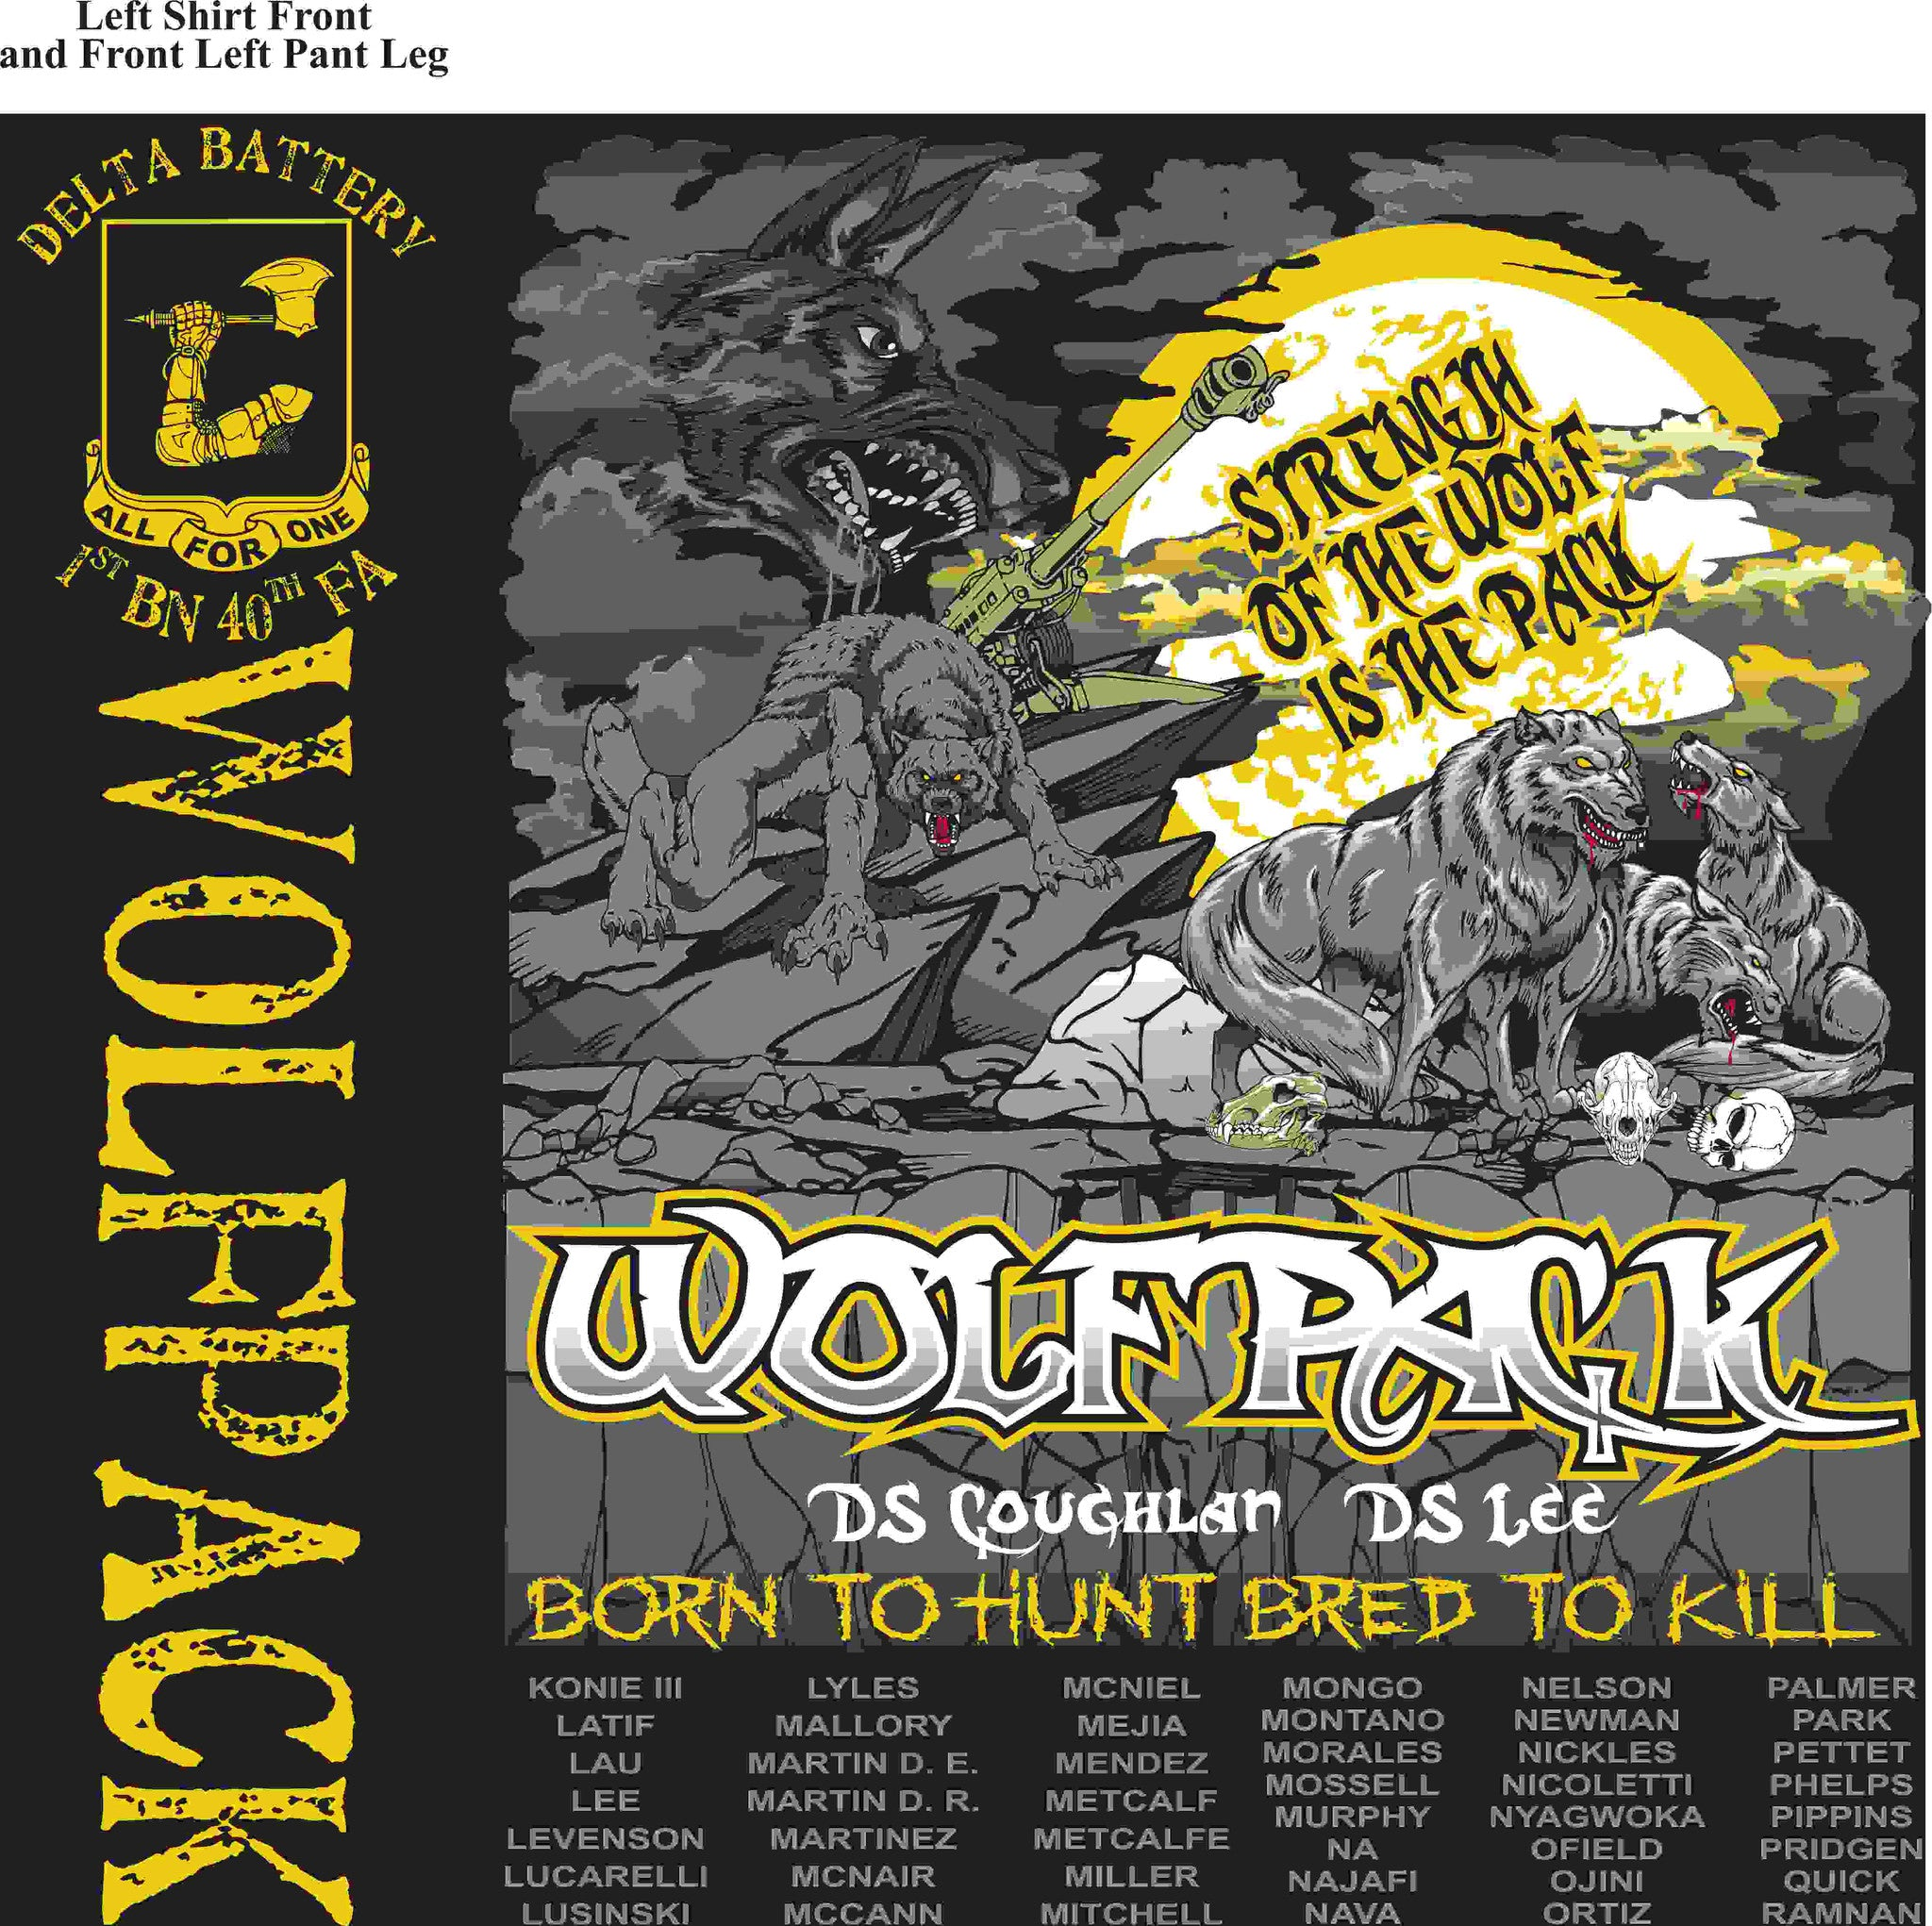 PLATOON SHIRTS (2nd generation print) DELTA 1st 40th WOLFPACK MAR 2016